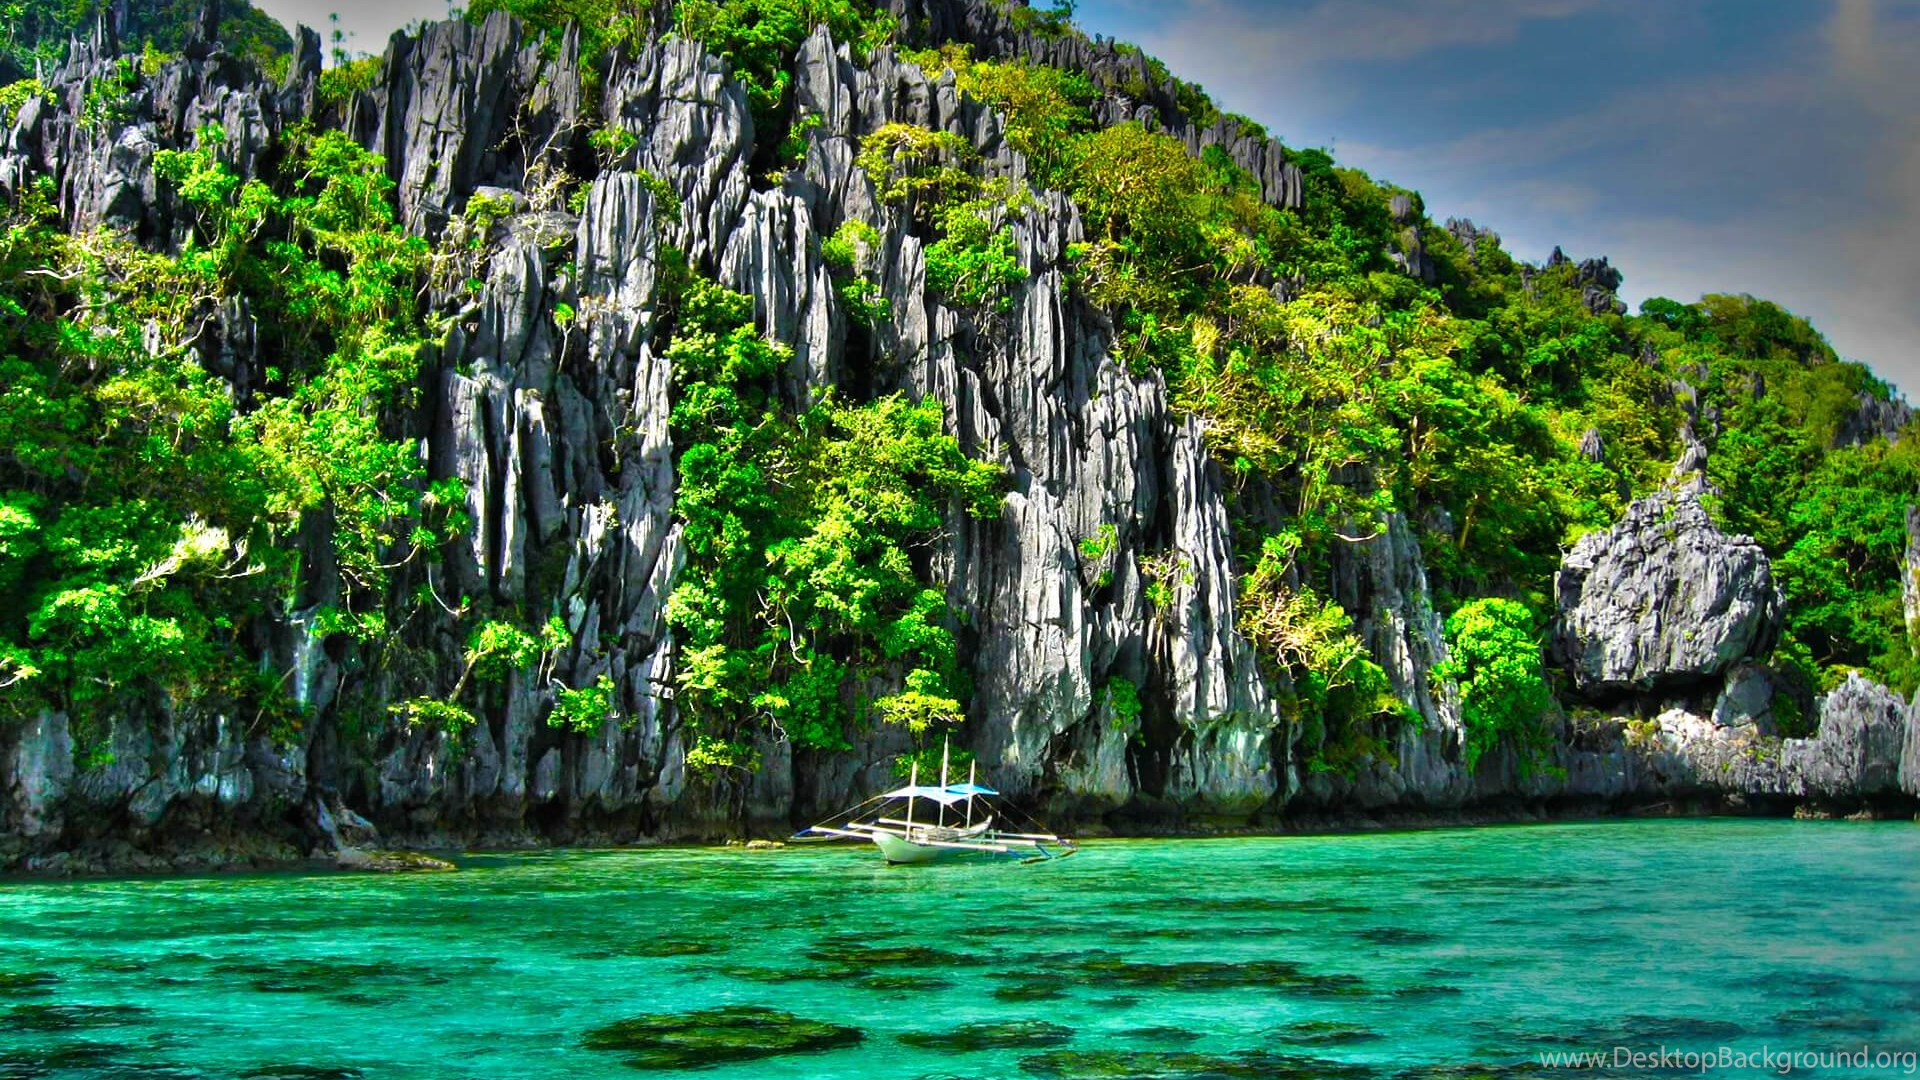 3d Touch Wallpaper For Android El Nido Palawan Philippines Wallpapers Desktop Background